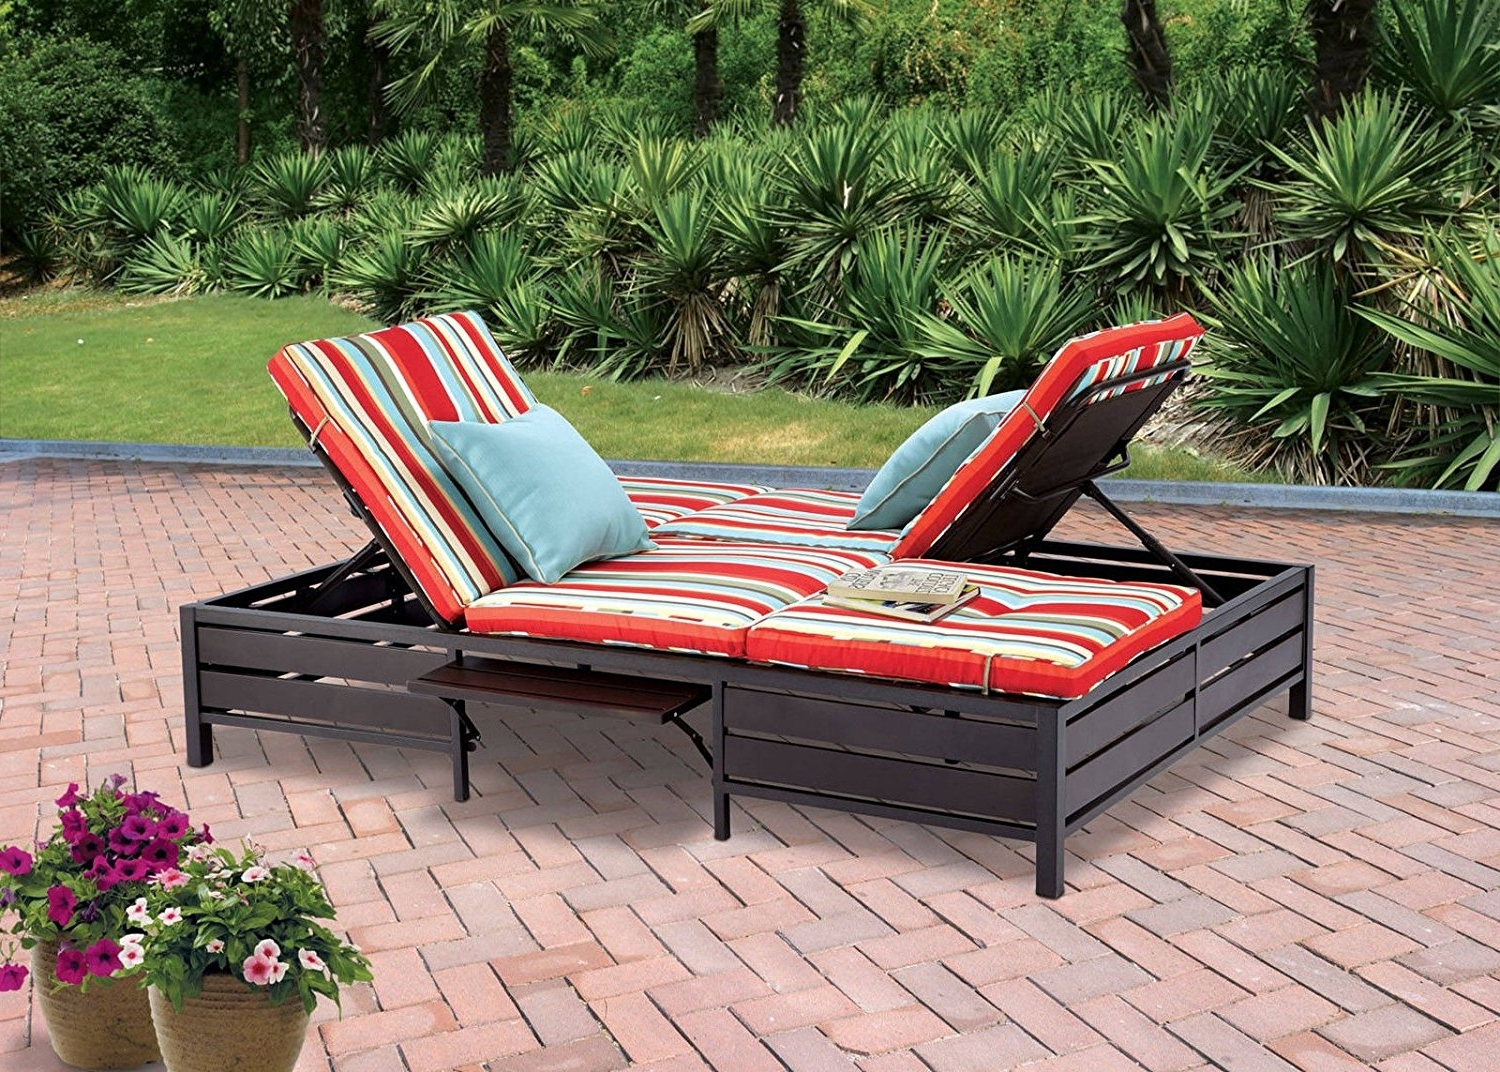 Amazon : Double Chaise Lounger – This Red Stripe Outdoor With Regard To Well Known Double Outdoor Chaise Lounges (View 3 of 15)